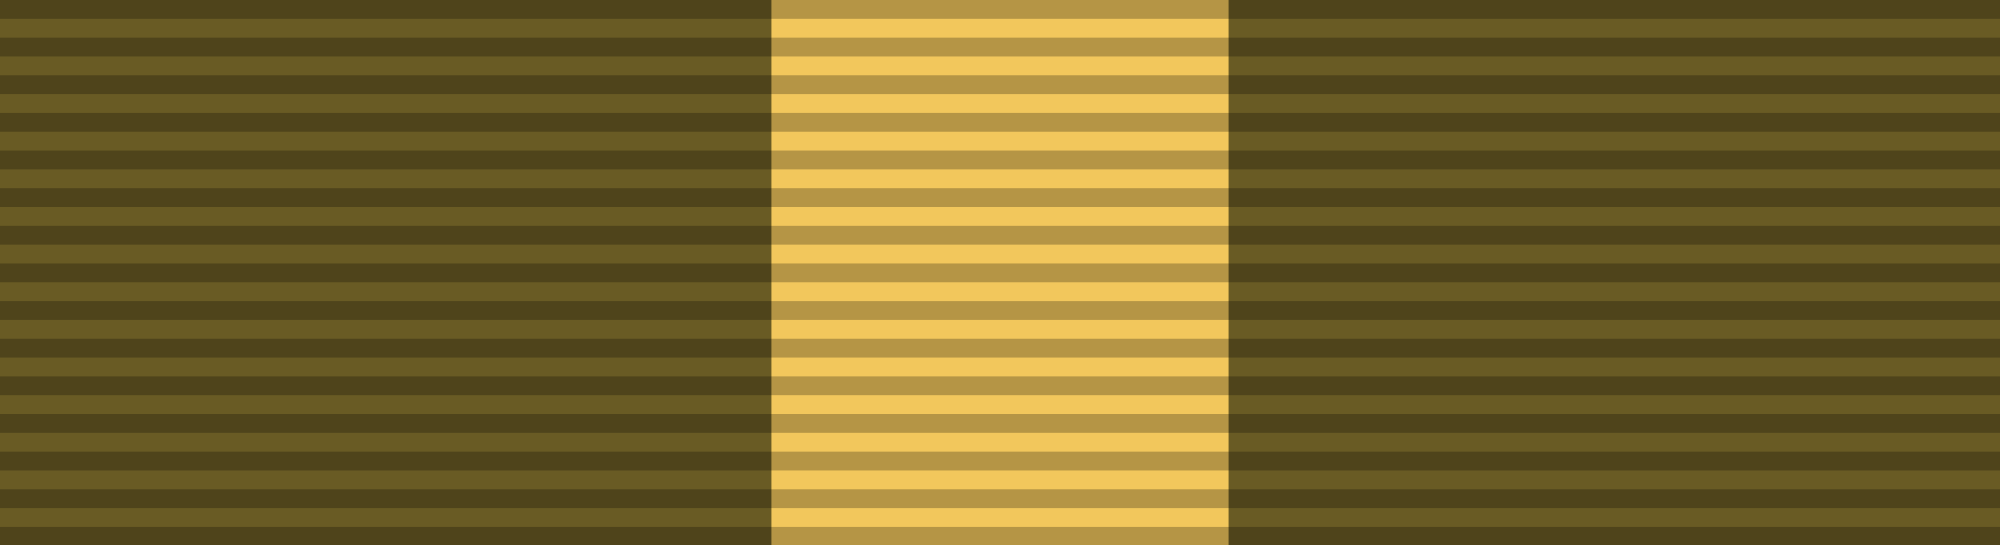 Marine Corps Drill Instructor Ribbon.png